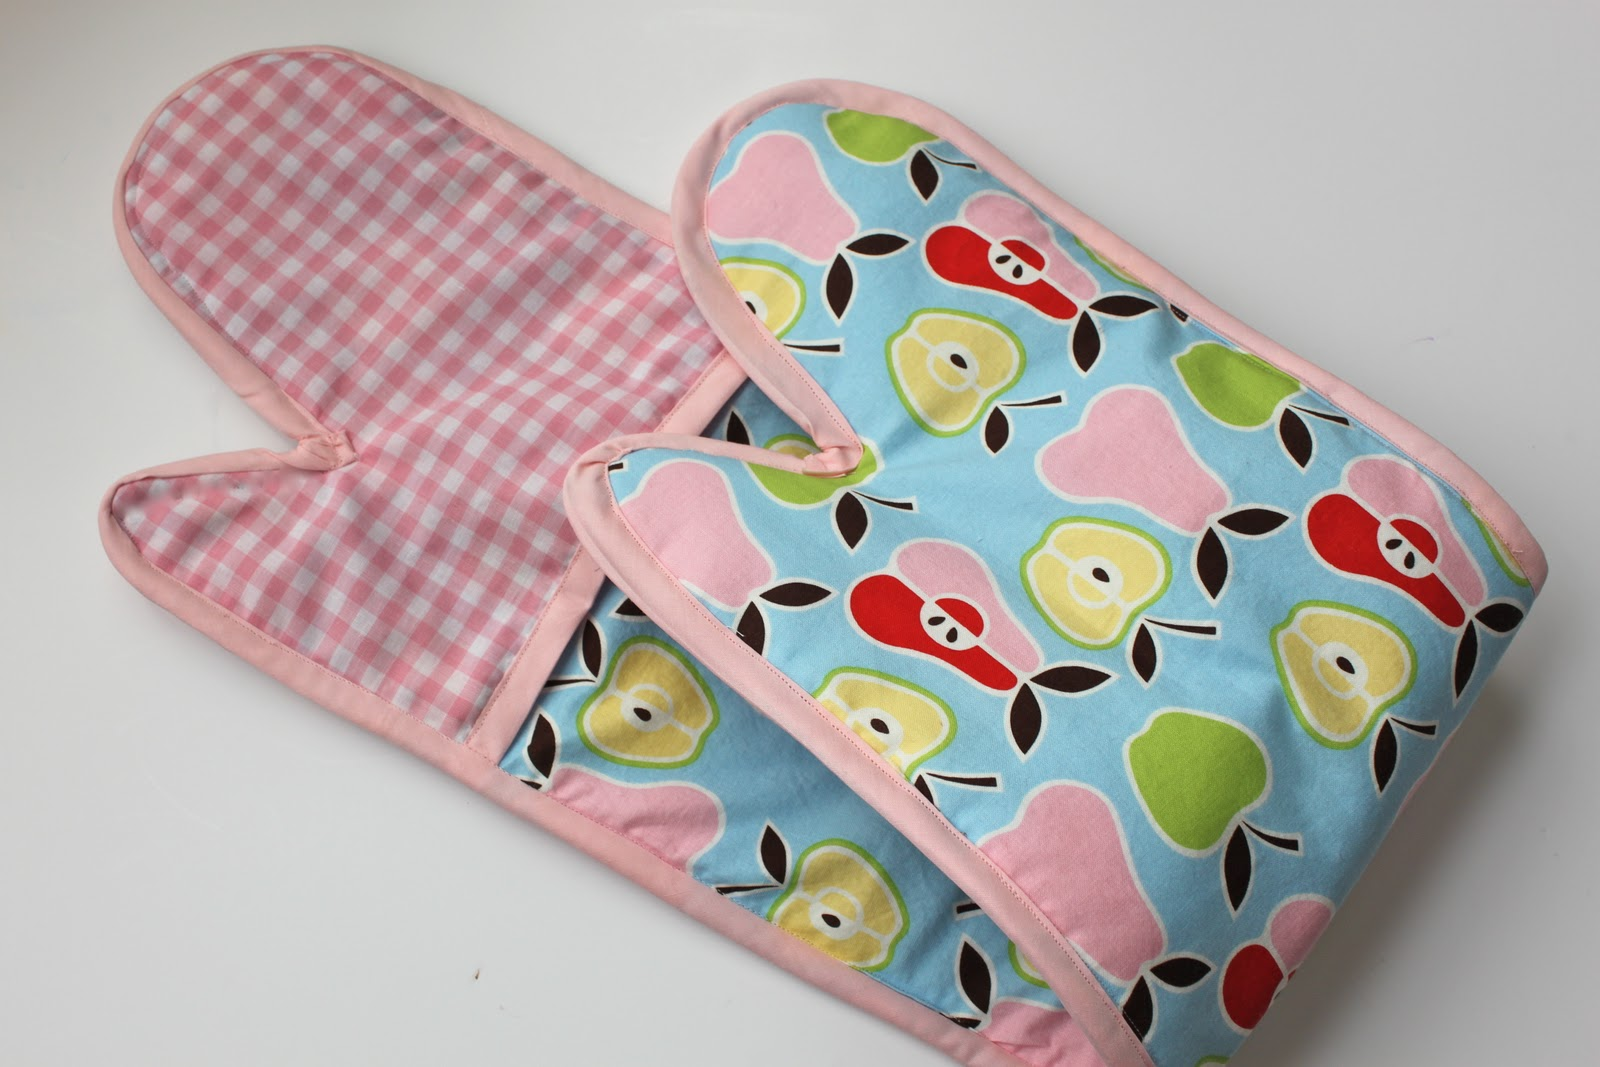 d5963fbed The Double Oven Mitt  A Tutorial  - Smashed Peas   Carrots